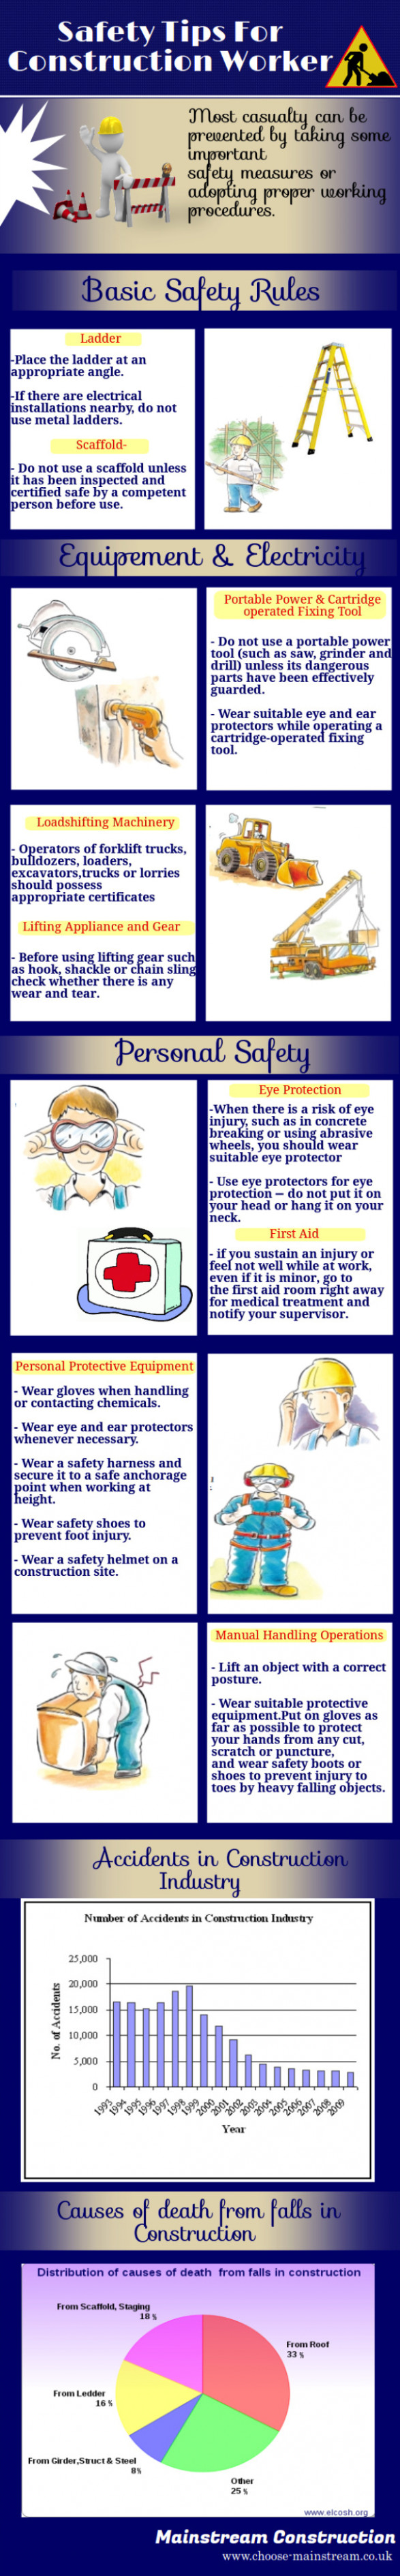 safety-tips-for-construction-worker